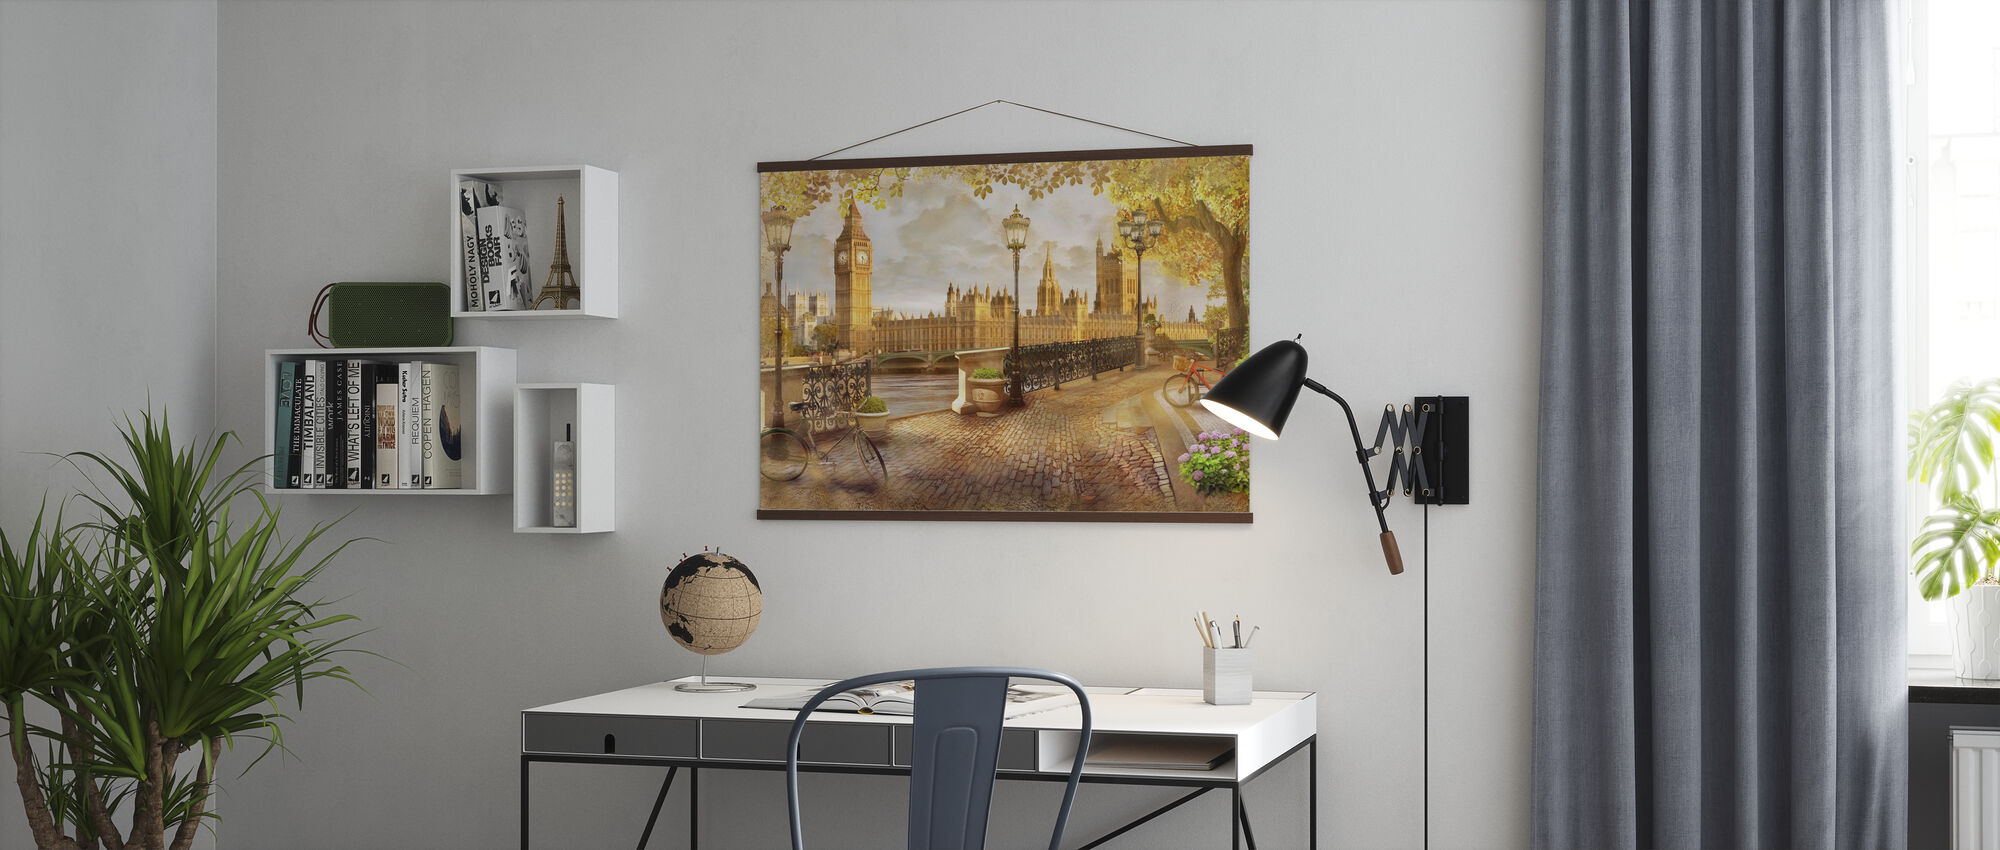 London Big Ben View - Poster - Kantoor